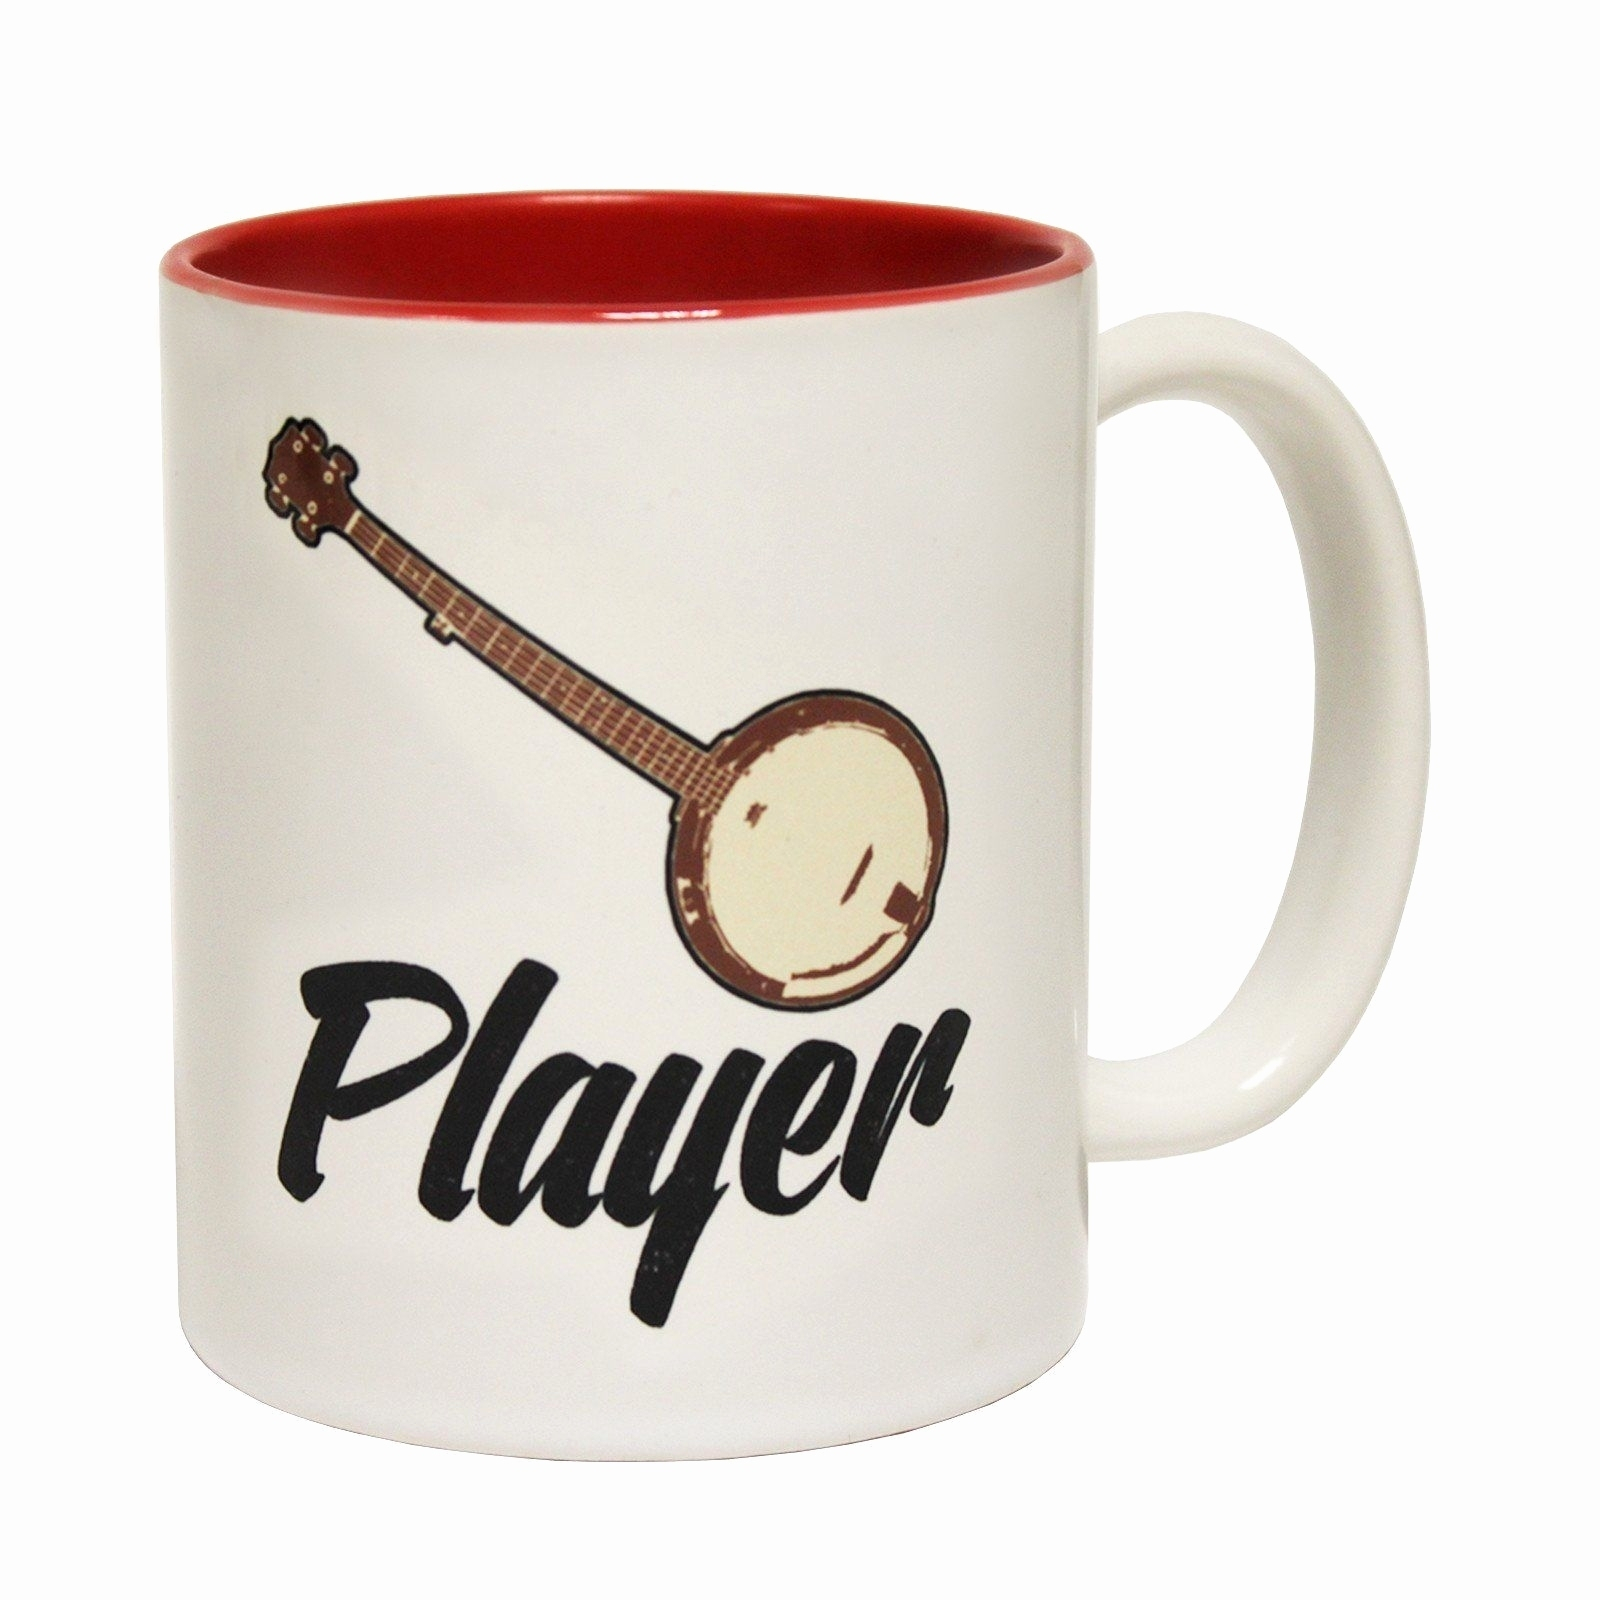 I Love Spreadsheets Mug Luxury Funny Mugs Banned Member Banjo Player With Spreadsheet Mug